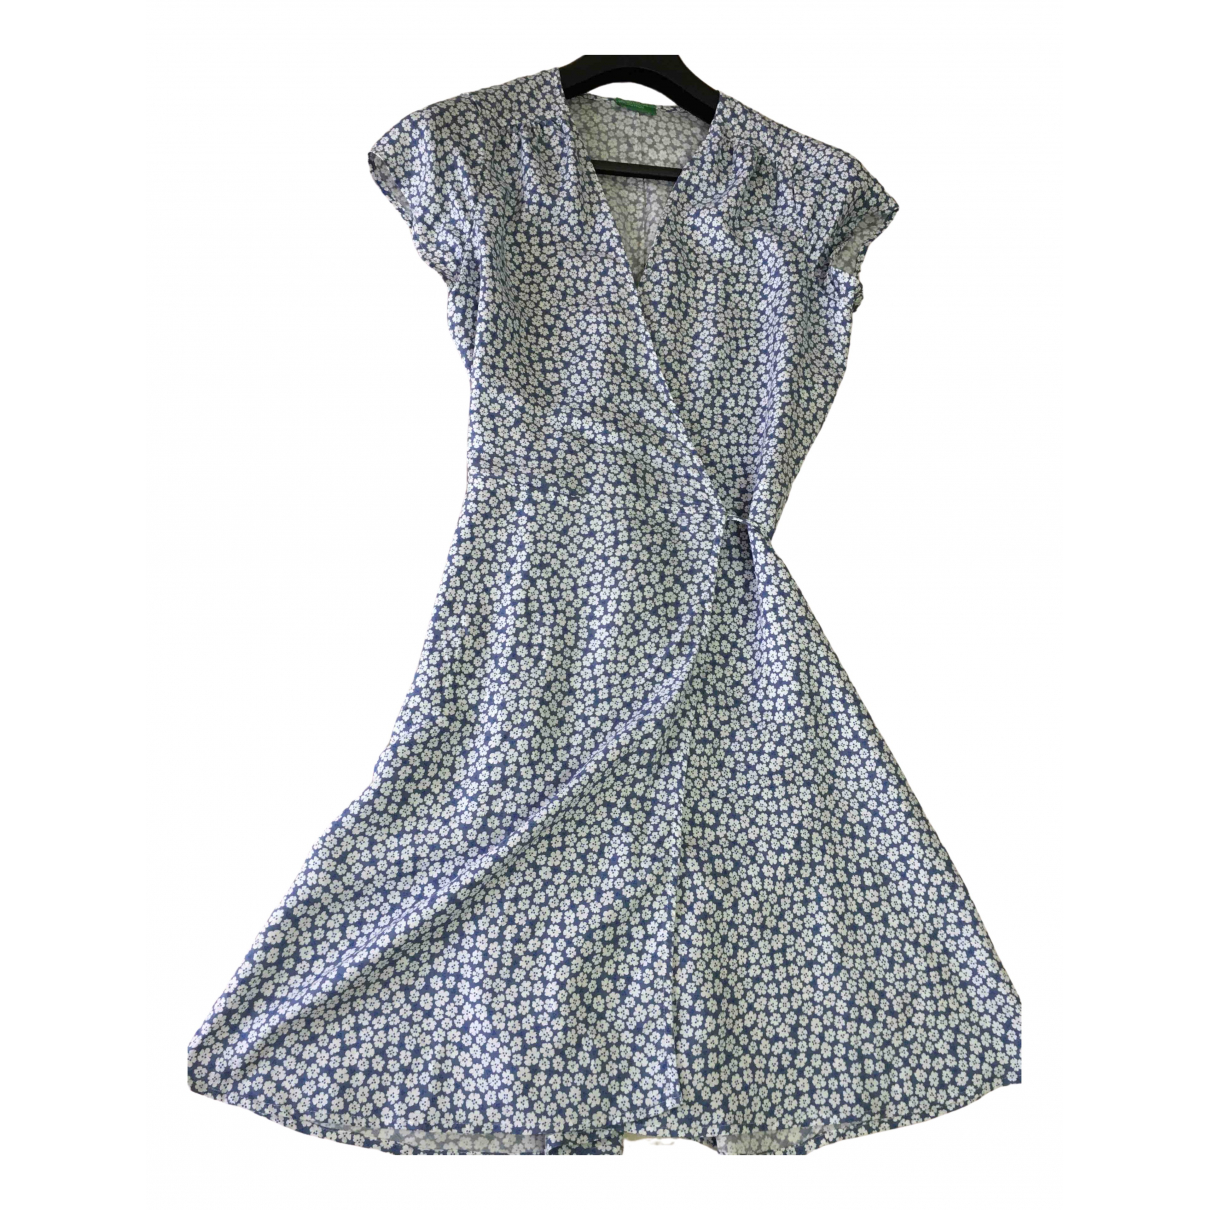 Non Signé / Unsigned \N dress for Women XS International